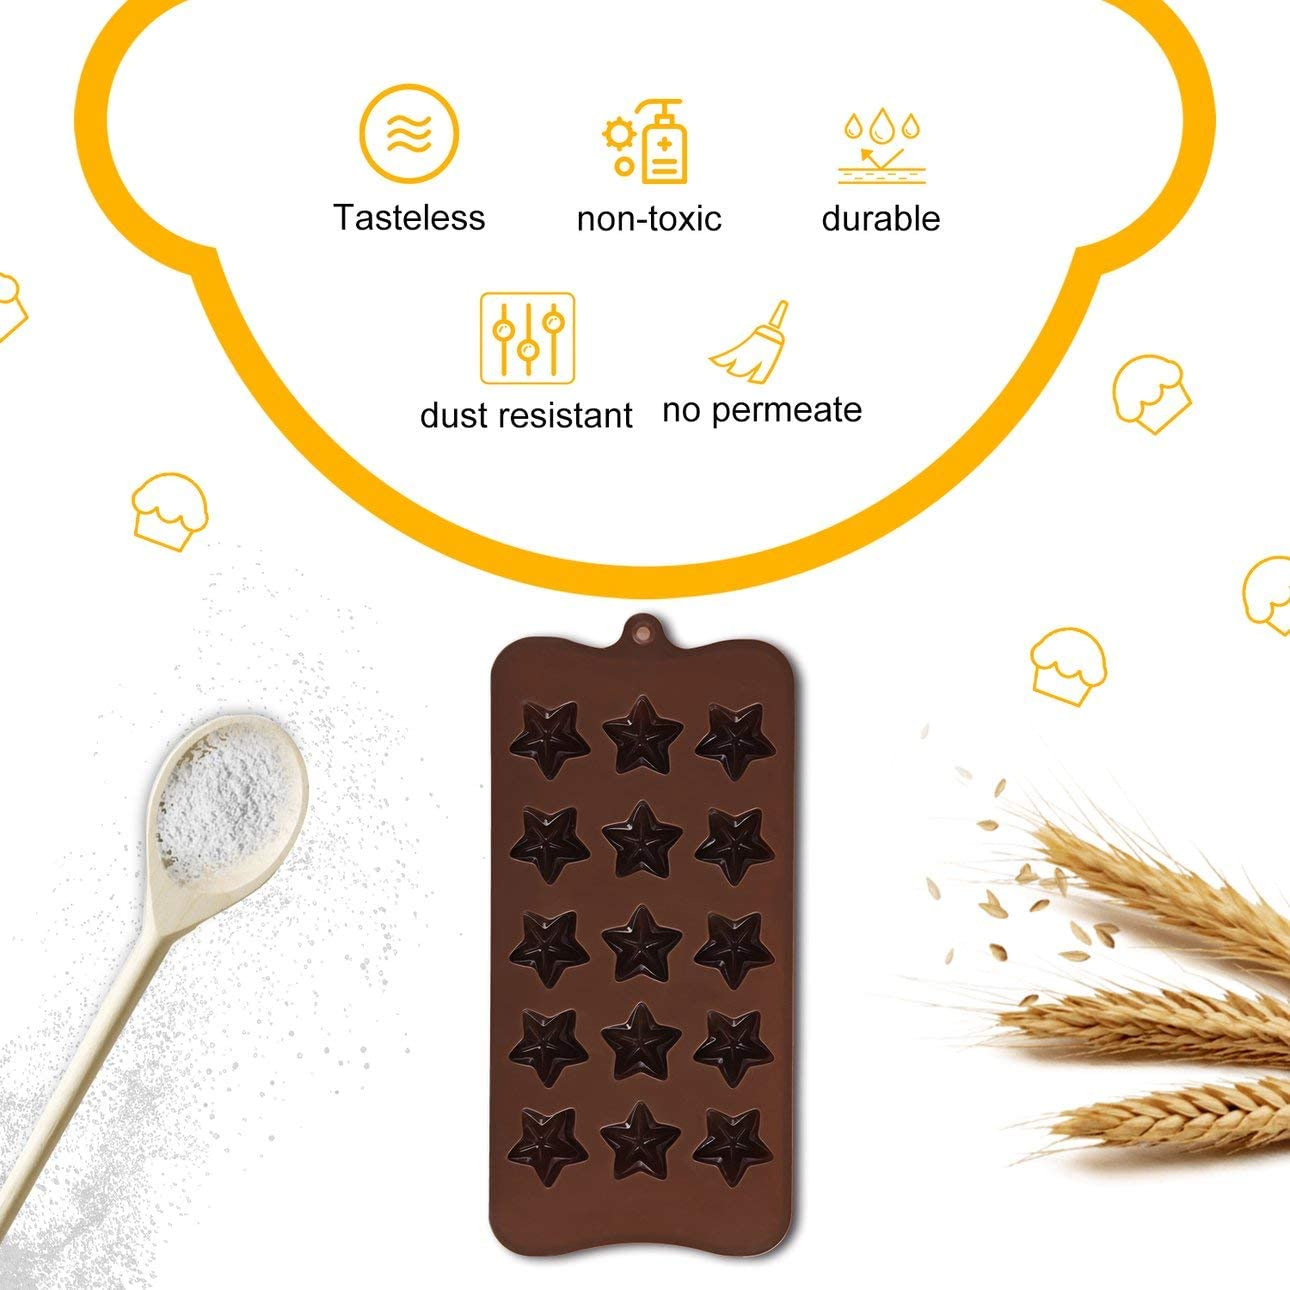 Liobaba 15 Slots Five-Pointed Star DIY Silicone Cake Mold Decorating for Making Homemade Bake Chocolate Candy Jelly Flexible